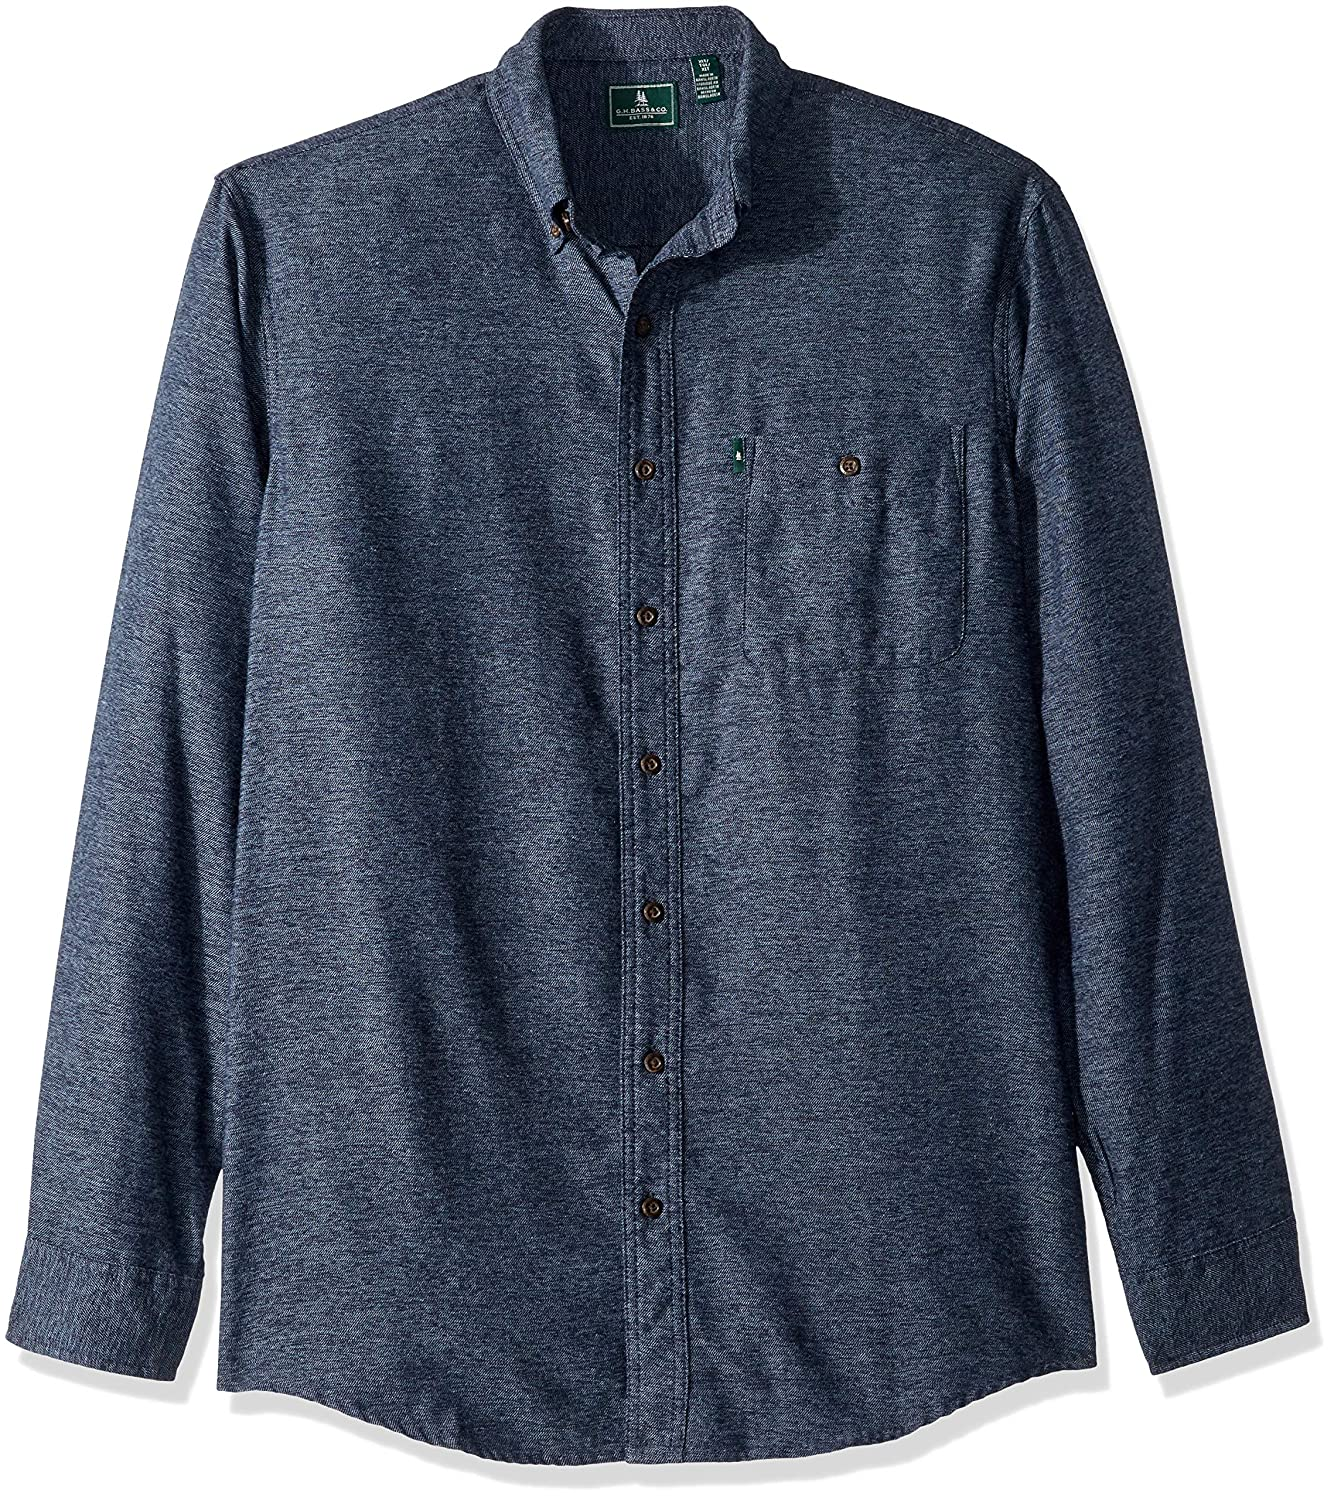 Bass /& Co G.H Mens Carbon Henley Long Sleeve Shirt